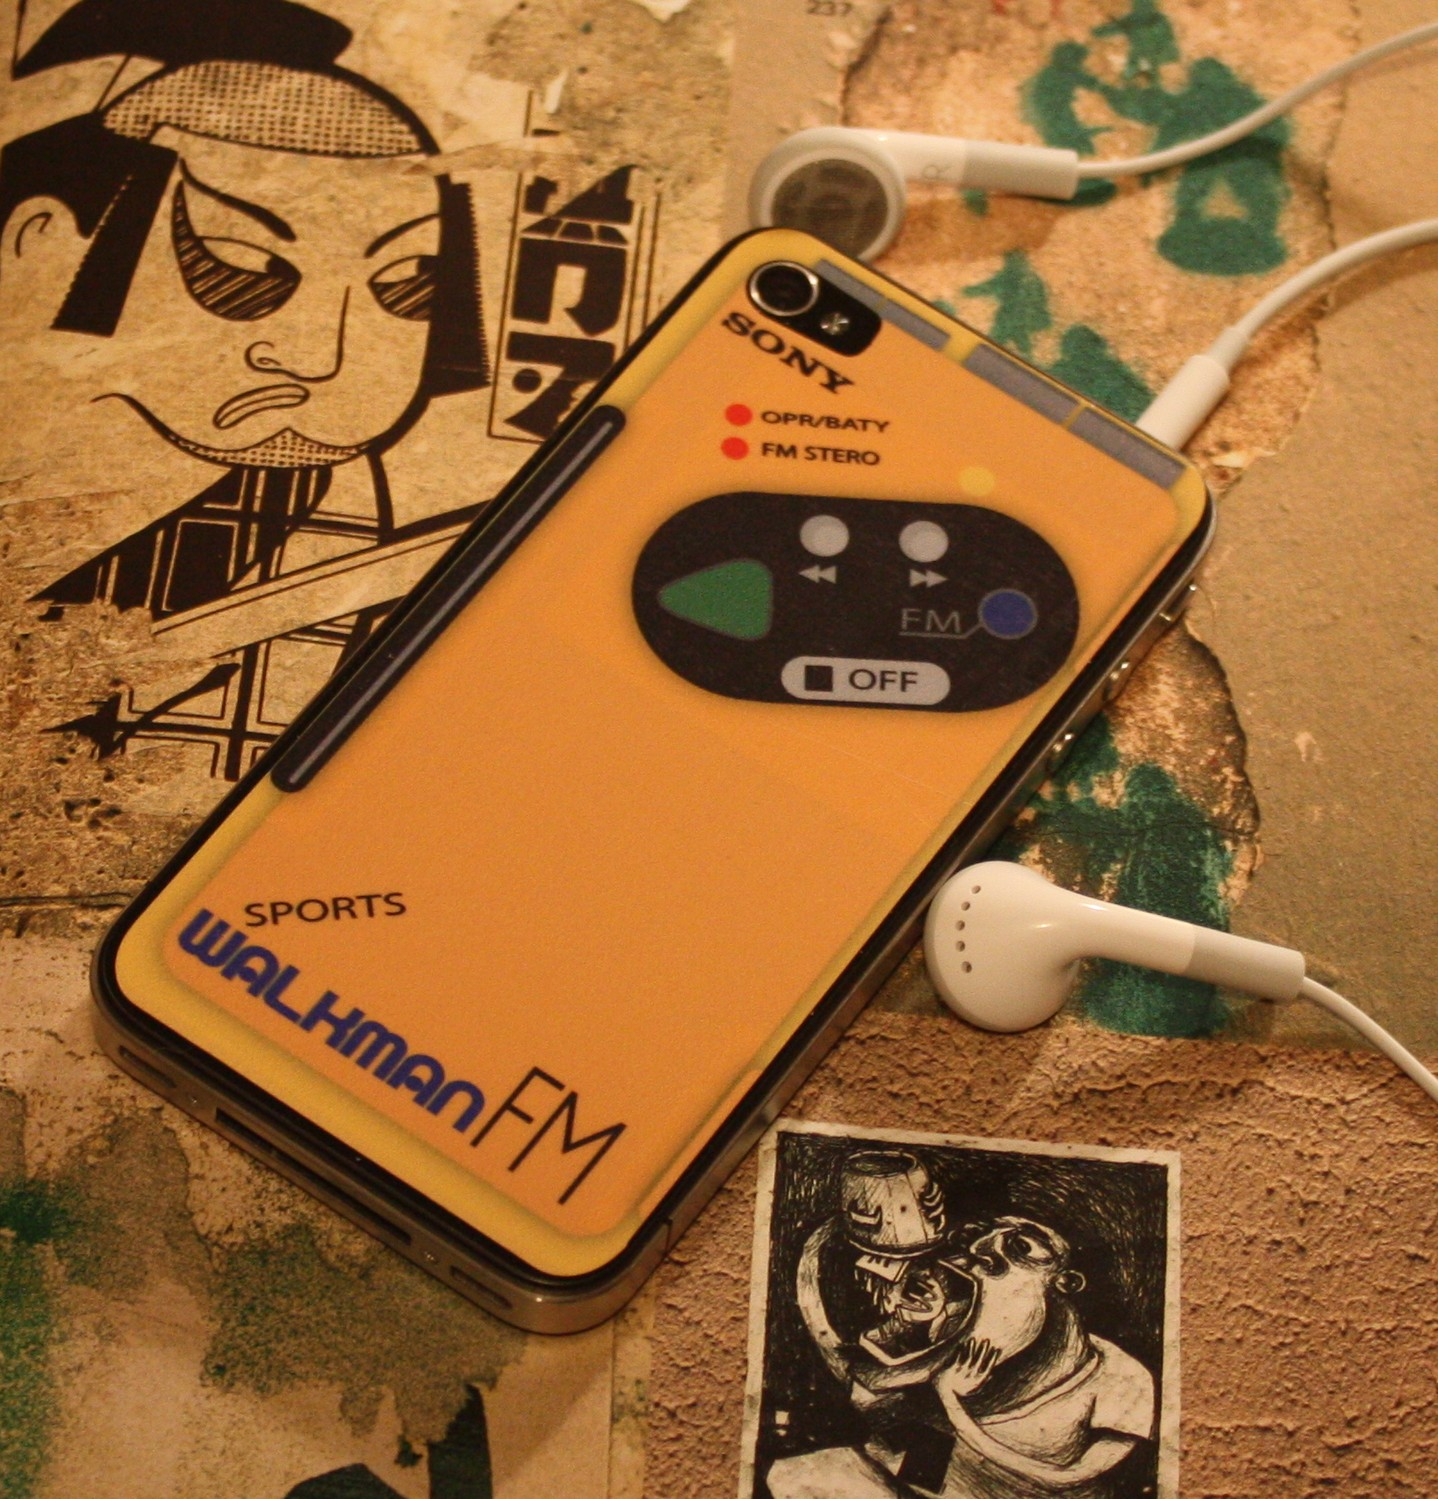 Don't Let The Sony Walkman Die – Freestyle Your iPhone 4!